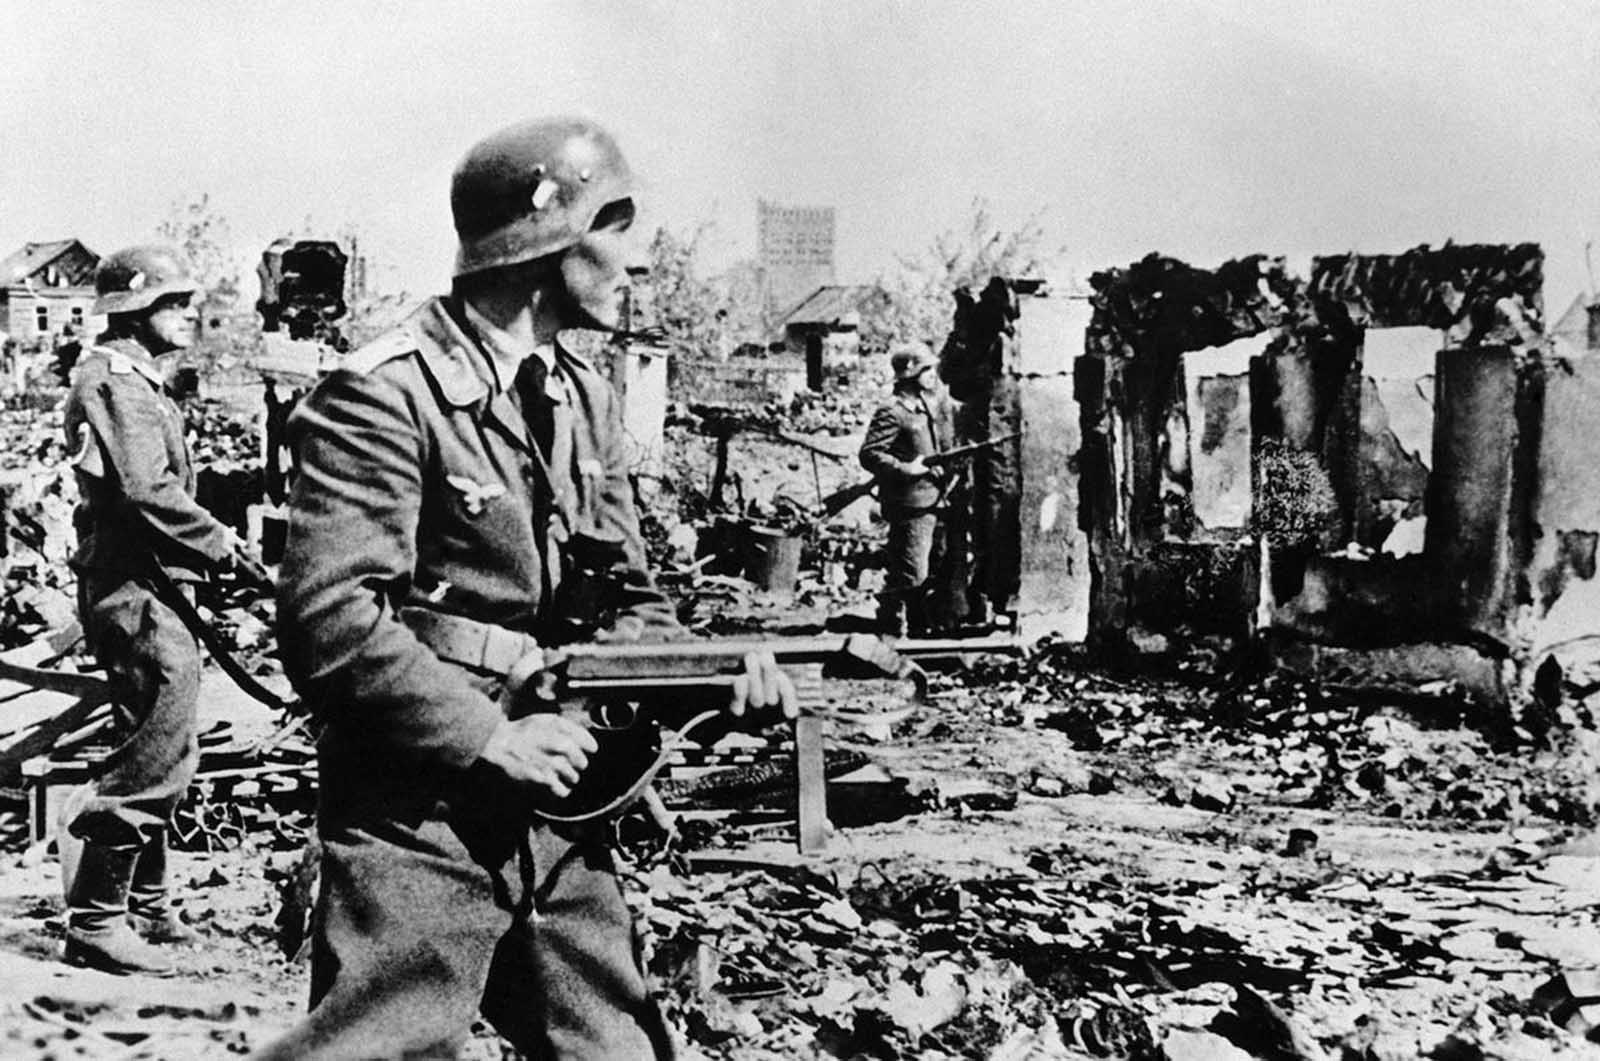 German troops involved in street fighting in the destroyed streets of Stalingrad in early 1943.